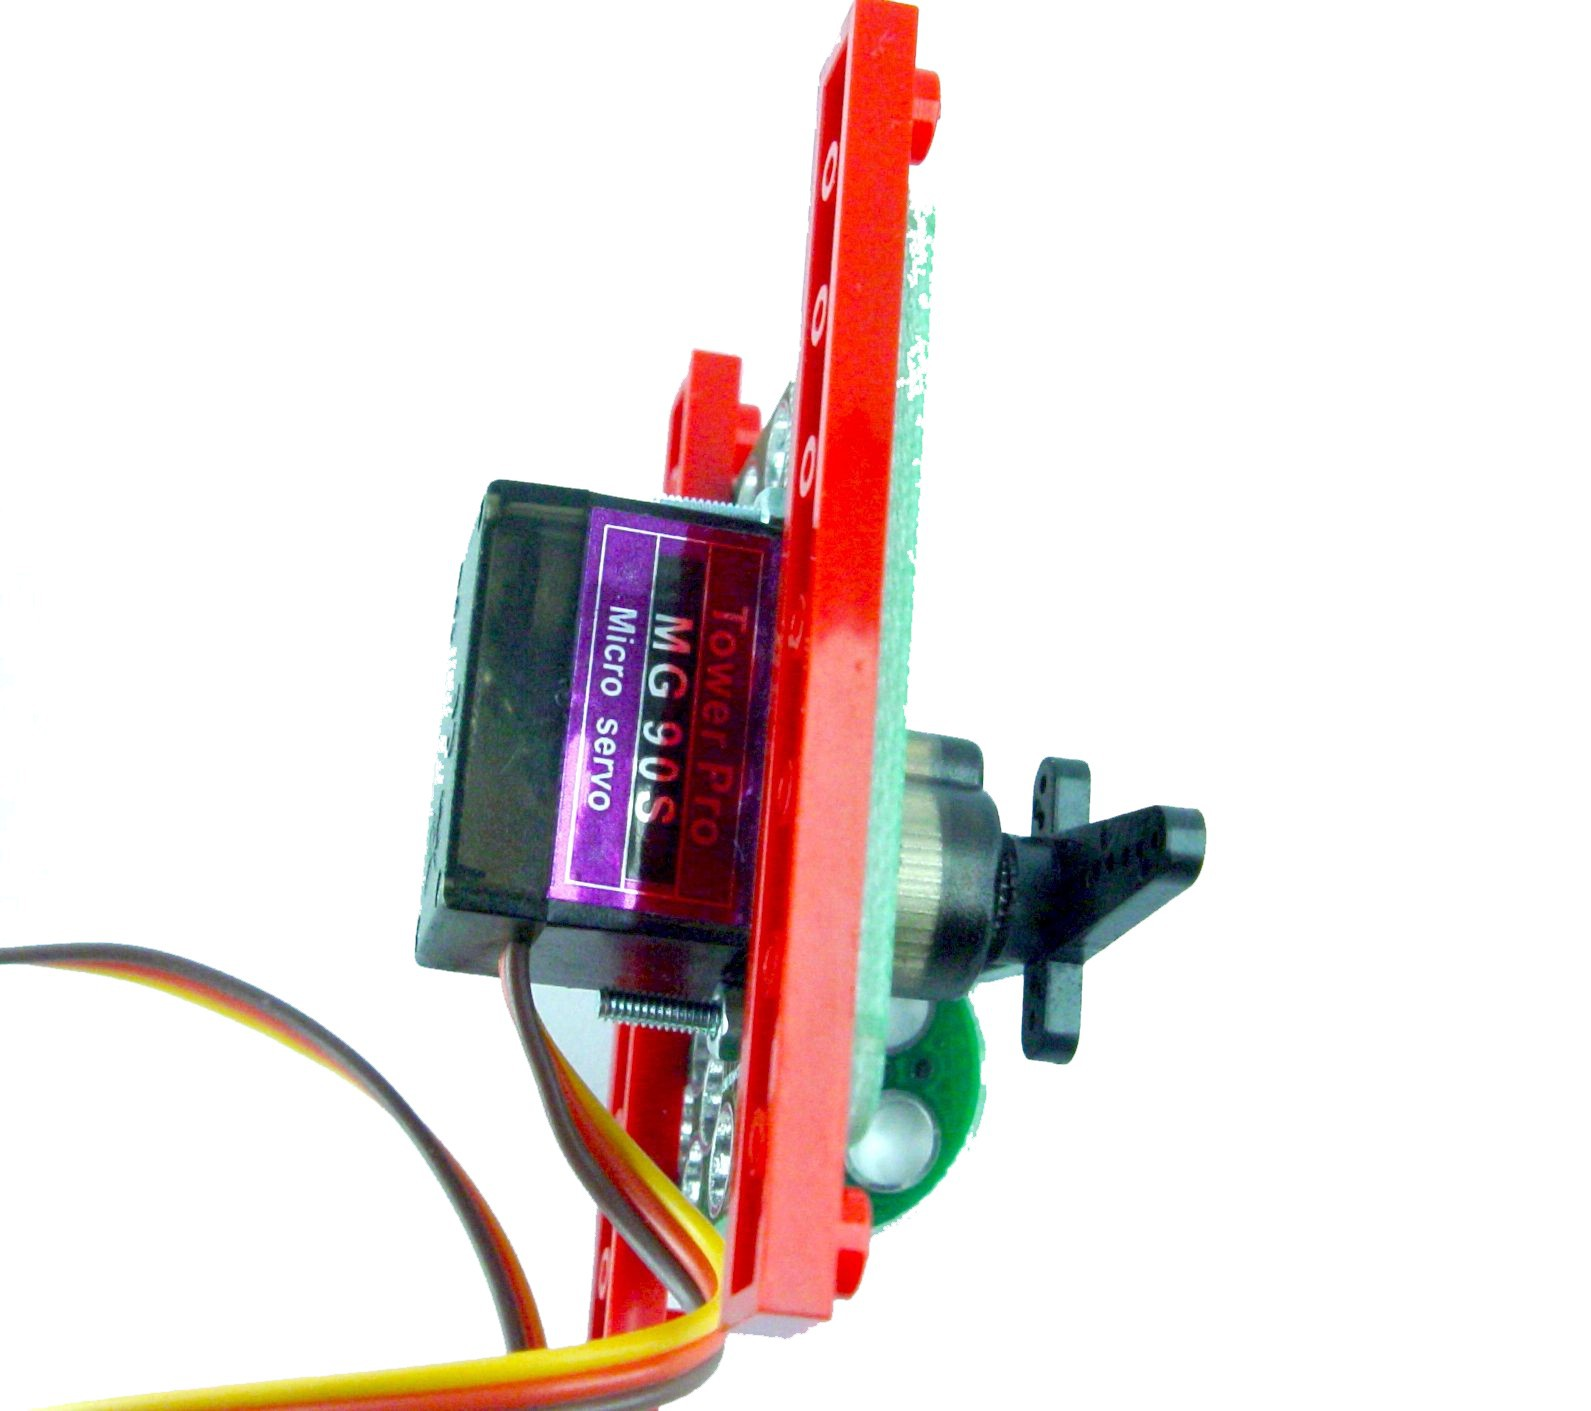 Gallery | LEGO adapter for MG90S servo | Hackaday io